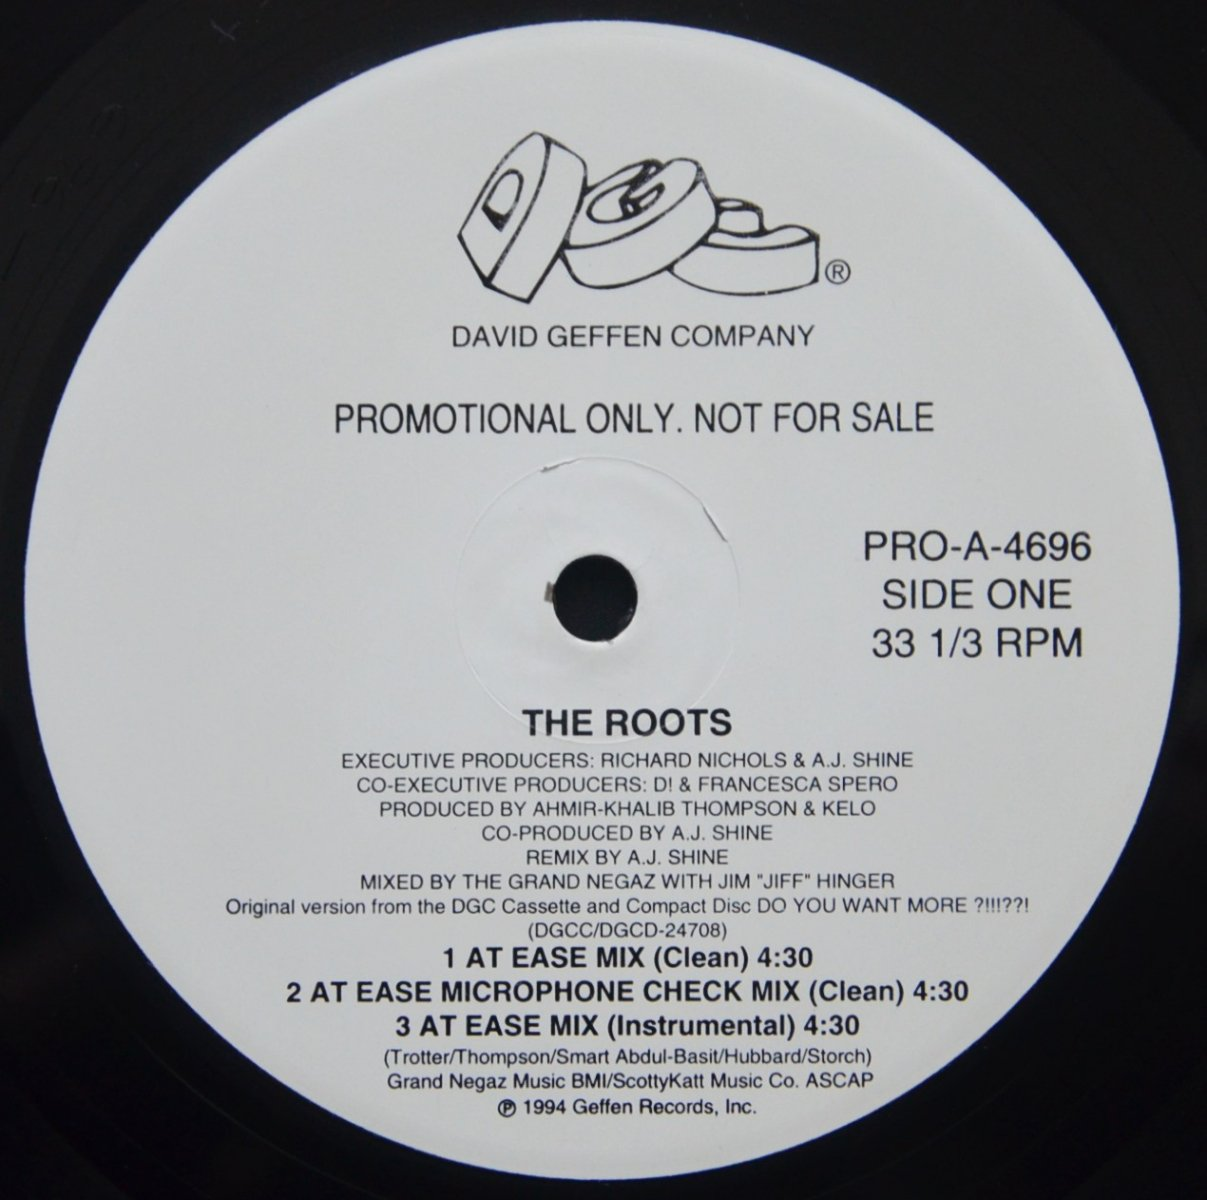 THE ROOTS / DISTORTION TO STATIC (REMIXES) (12